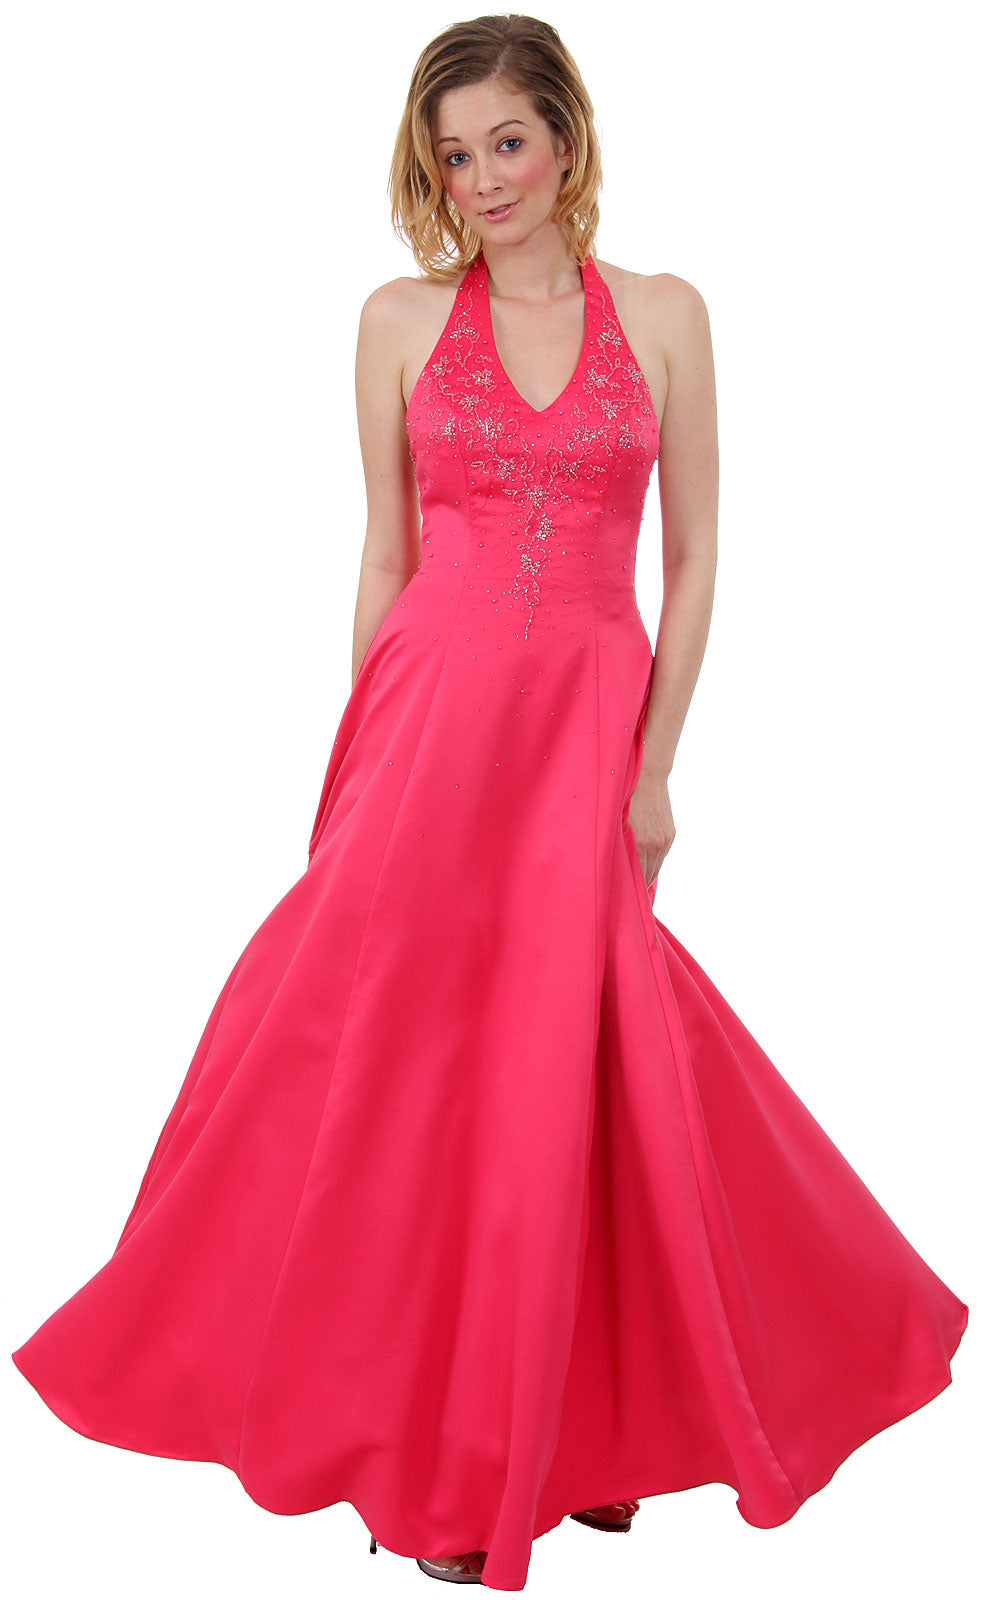 Main image of Beaded Halter-neck Prom Dress